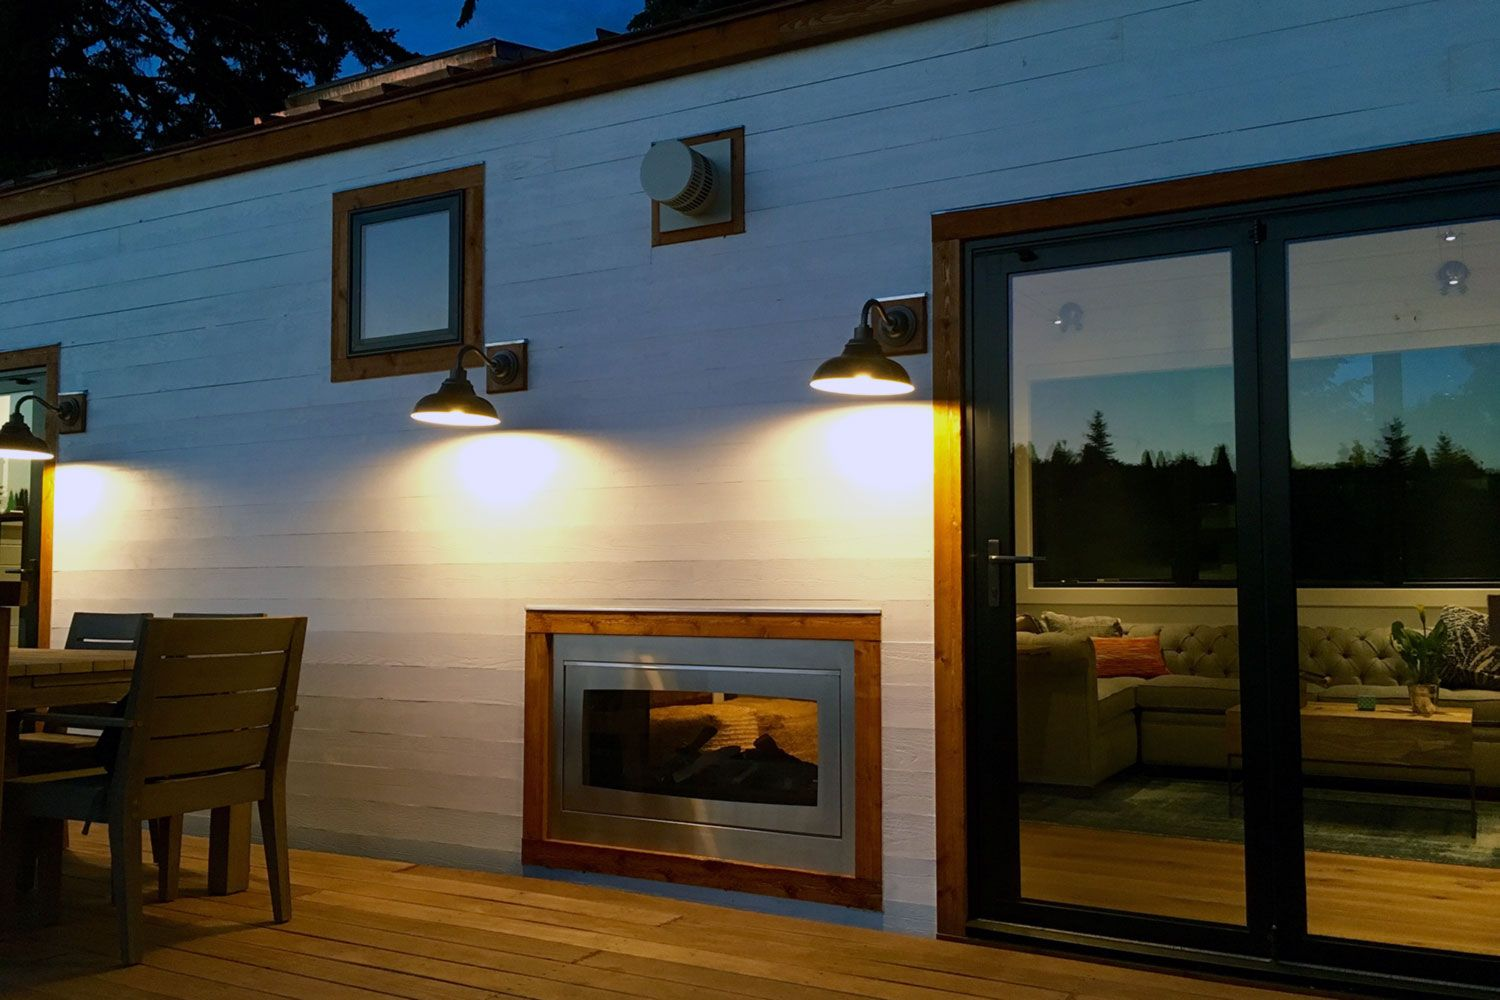 I like the inside/outside fireplace one of the BEST tiny home design Inside Outside Small Home Designs Photos on small home layouts, small house design classic, small cabin home designs, small home interior design, small home plans country style, small home exterior designs, small affordable master bathroom designs, small home decorating, small family home inside, small front lobby design ideas, small dwellings design, small home ideas,